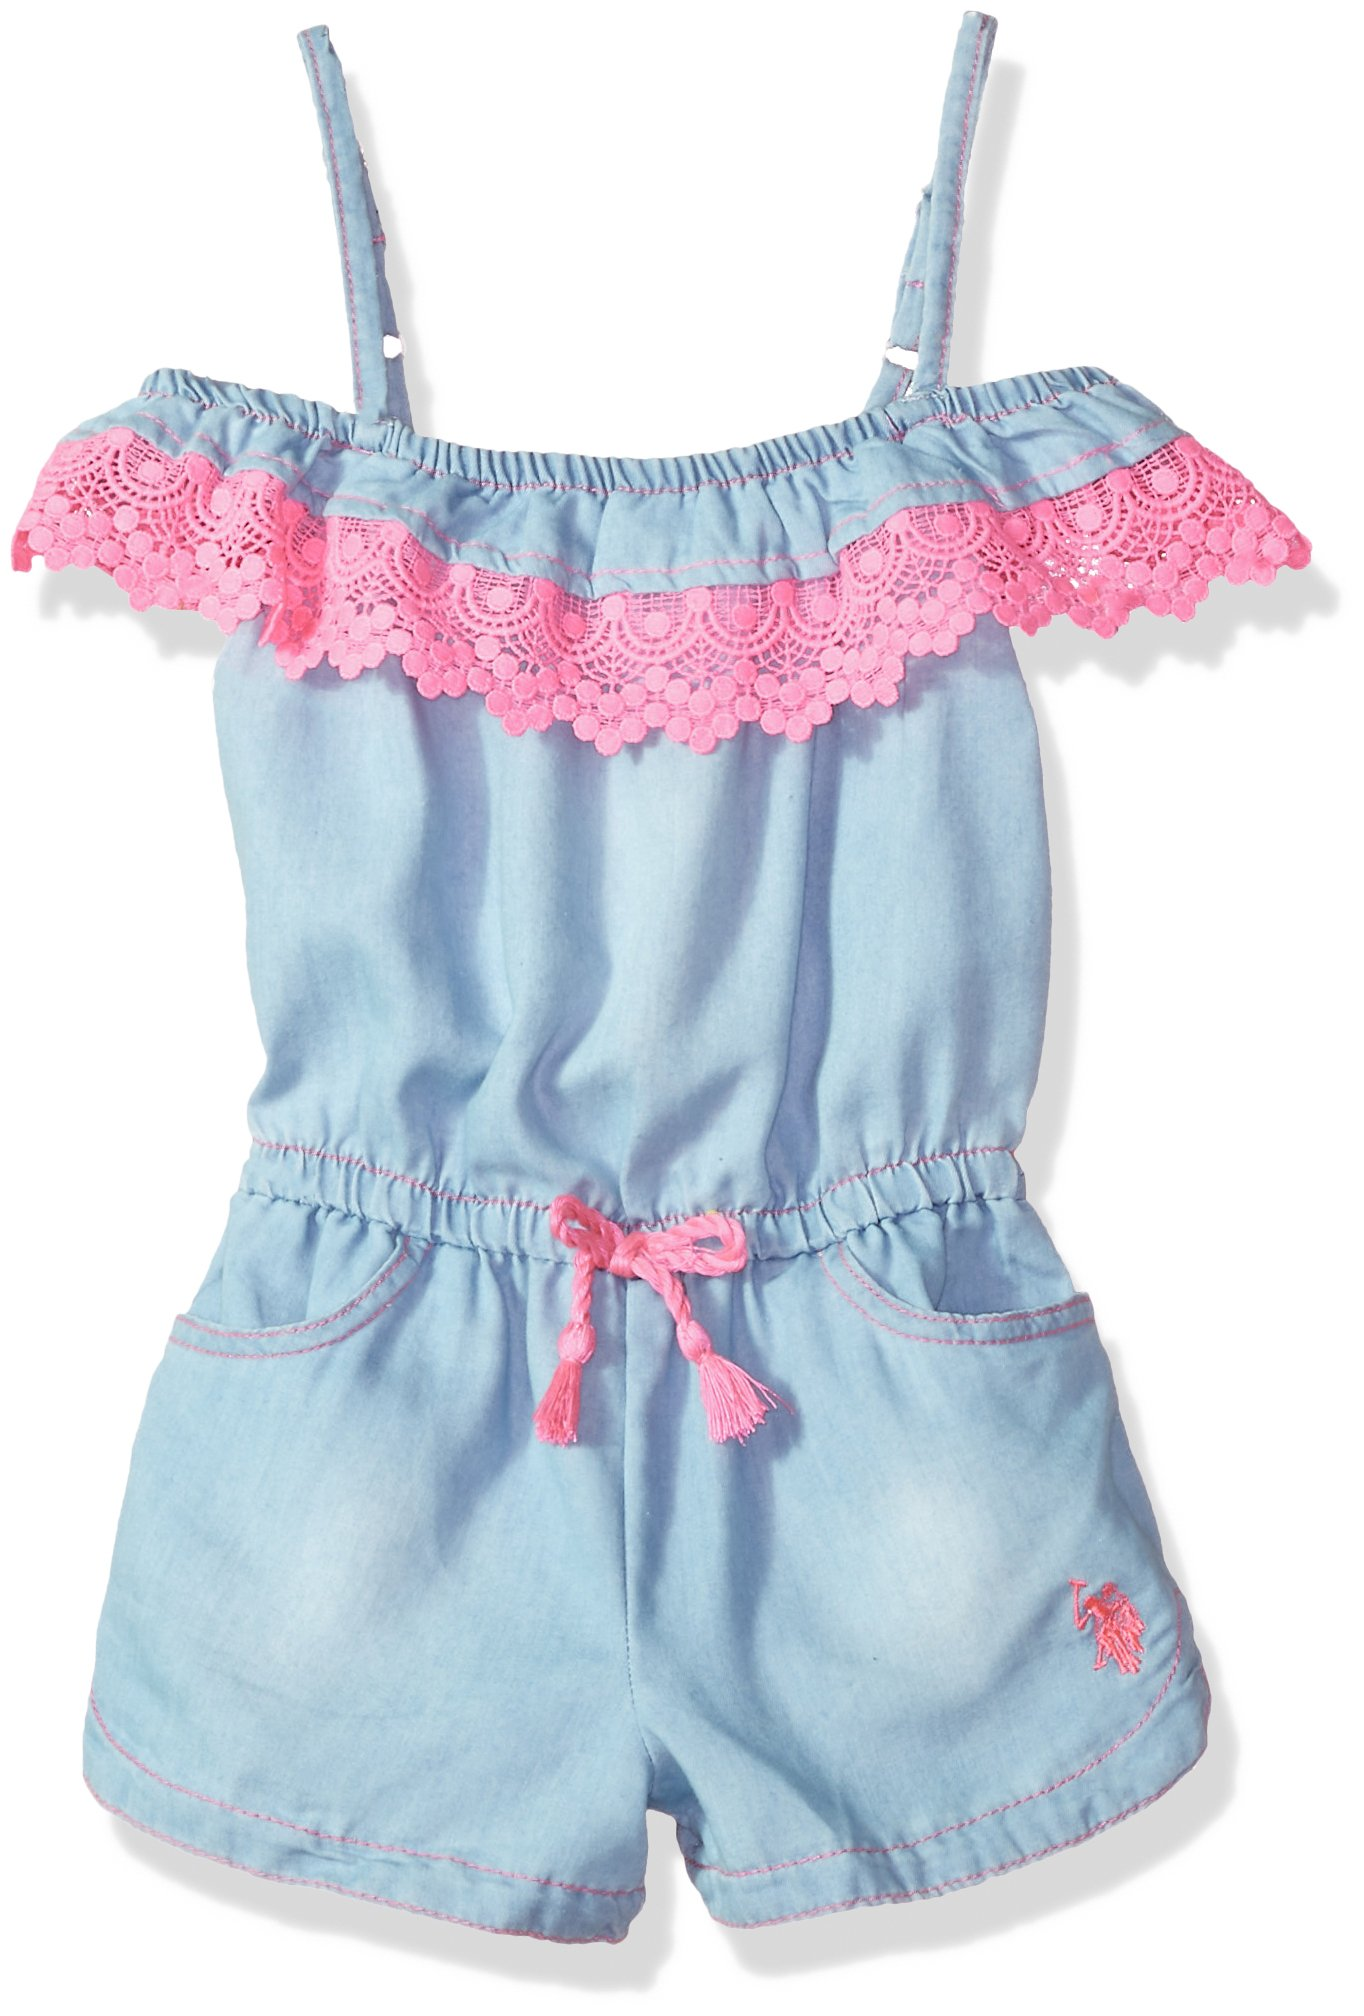 U.S. Polo Assn. Big Girls' Romper, Denim Lace Romper Light Wash, 8